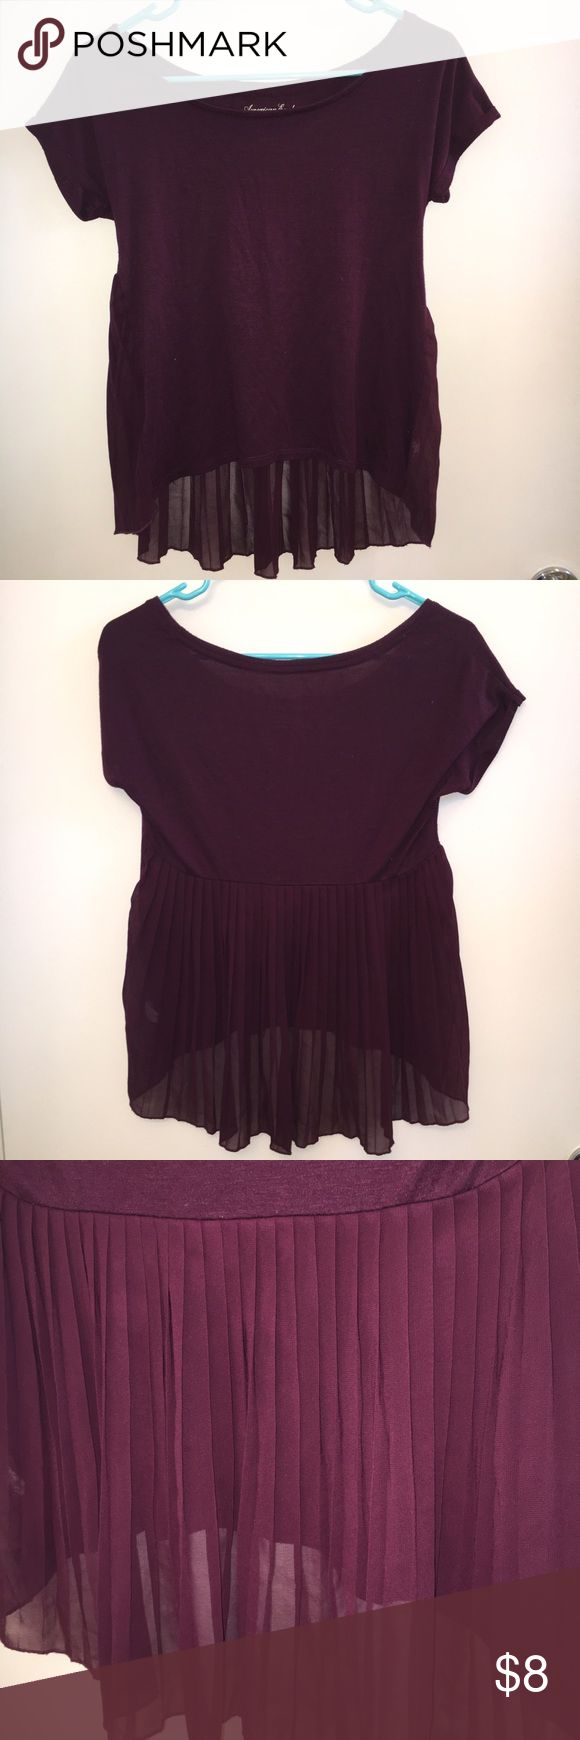 American Eagle Happy Hour Tee Burgundy, in excellent condition. American Eagle Outfitters Tops Tees - Short Sleeve